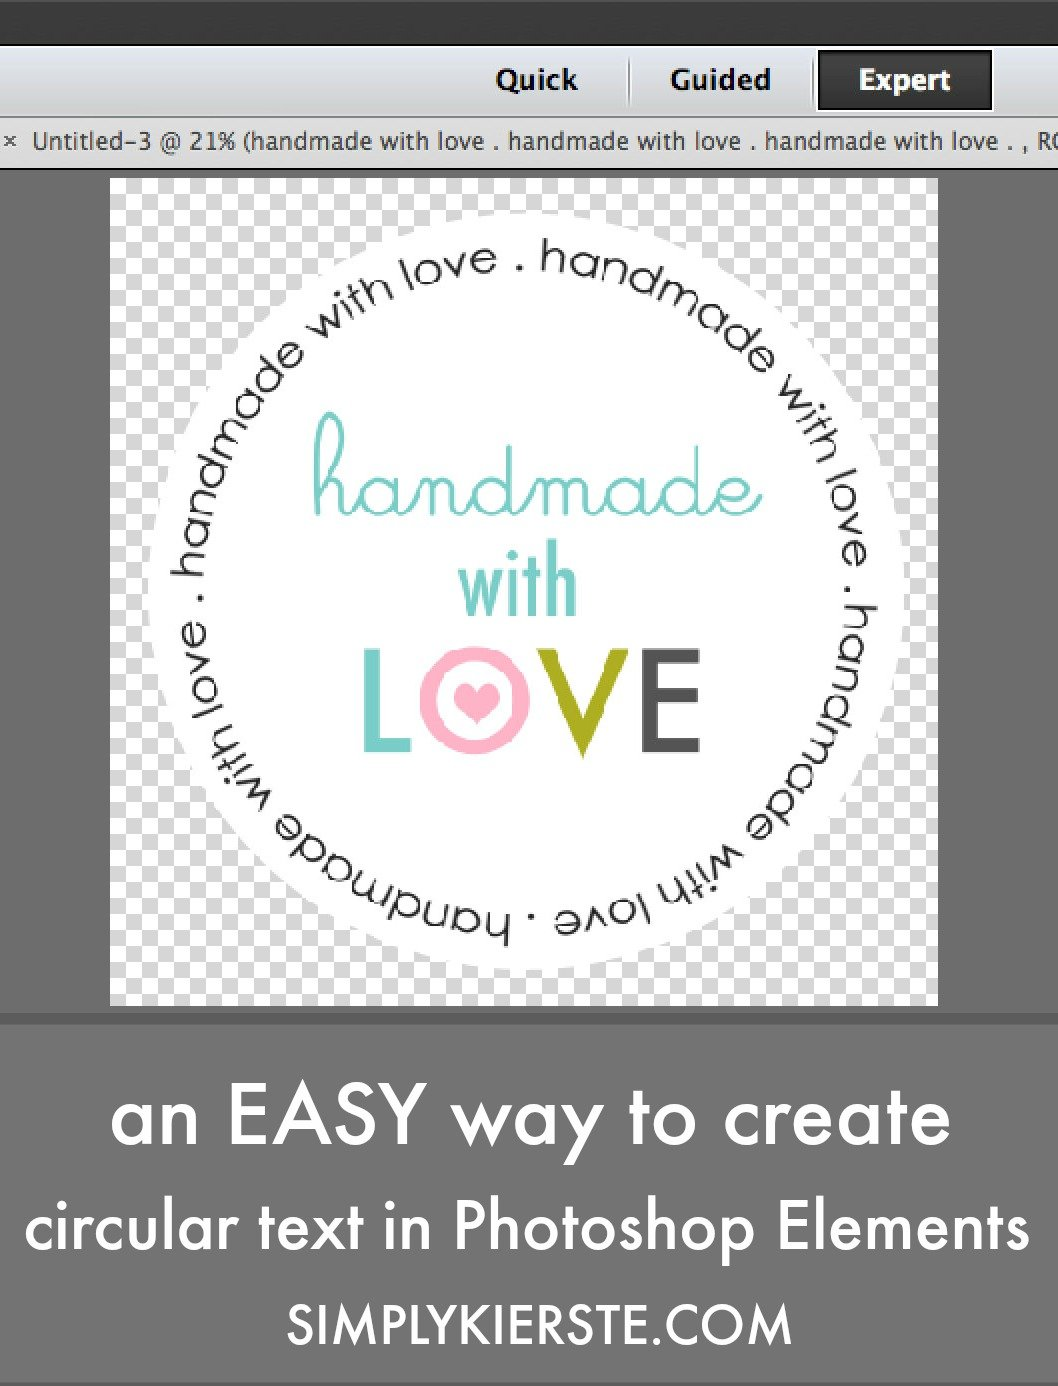 An easy way to create circular text in Photoshop Elements